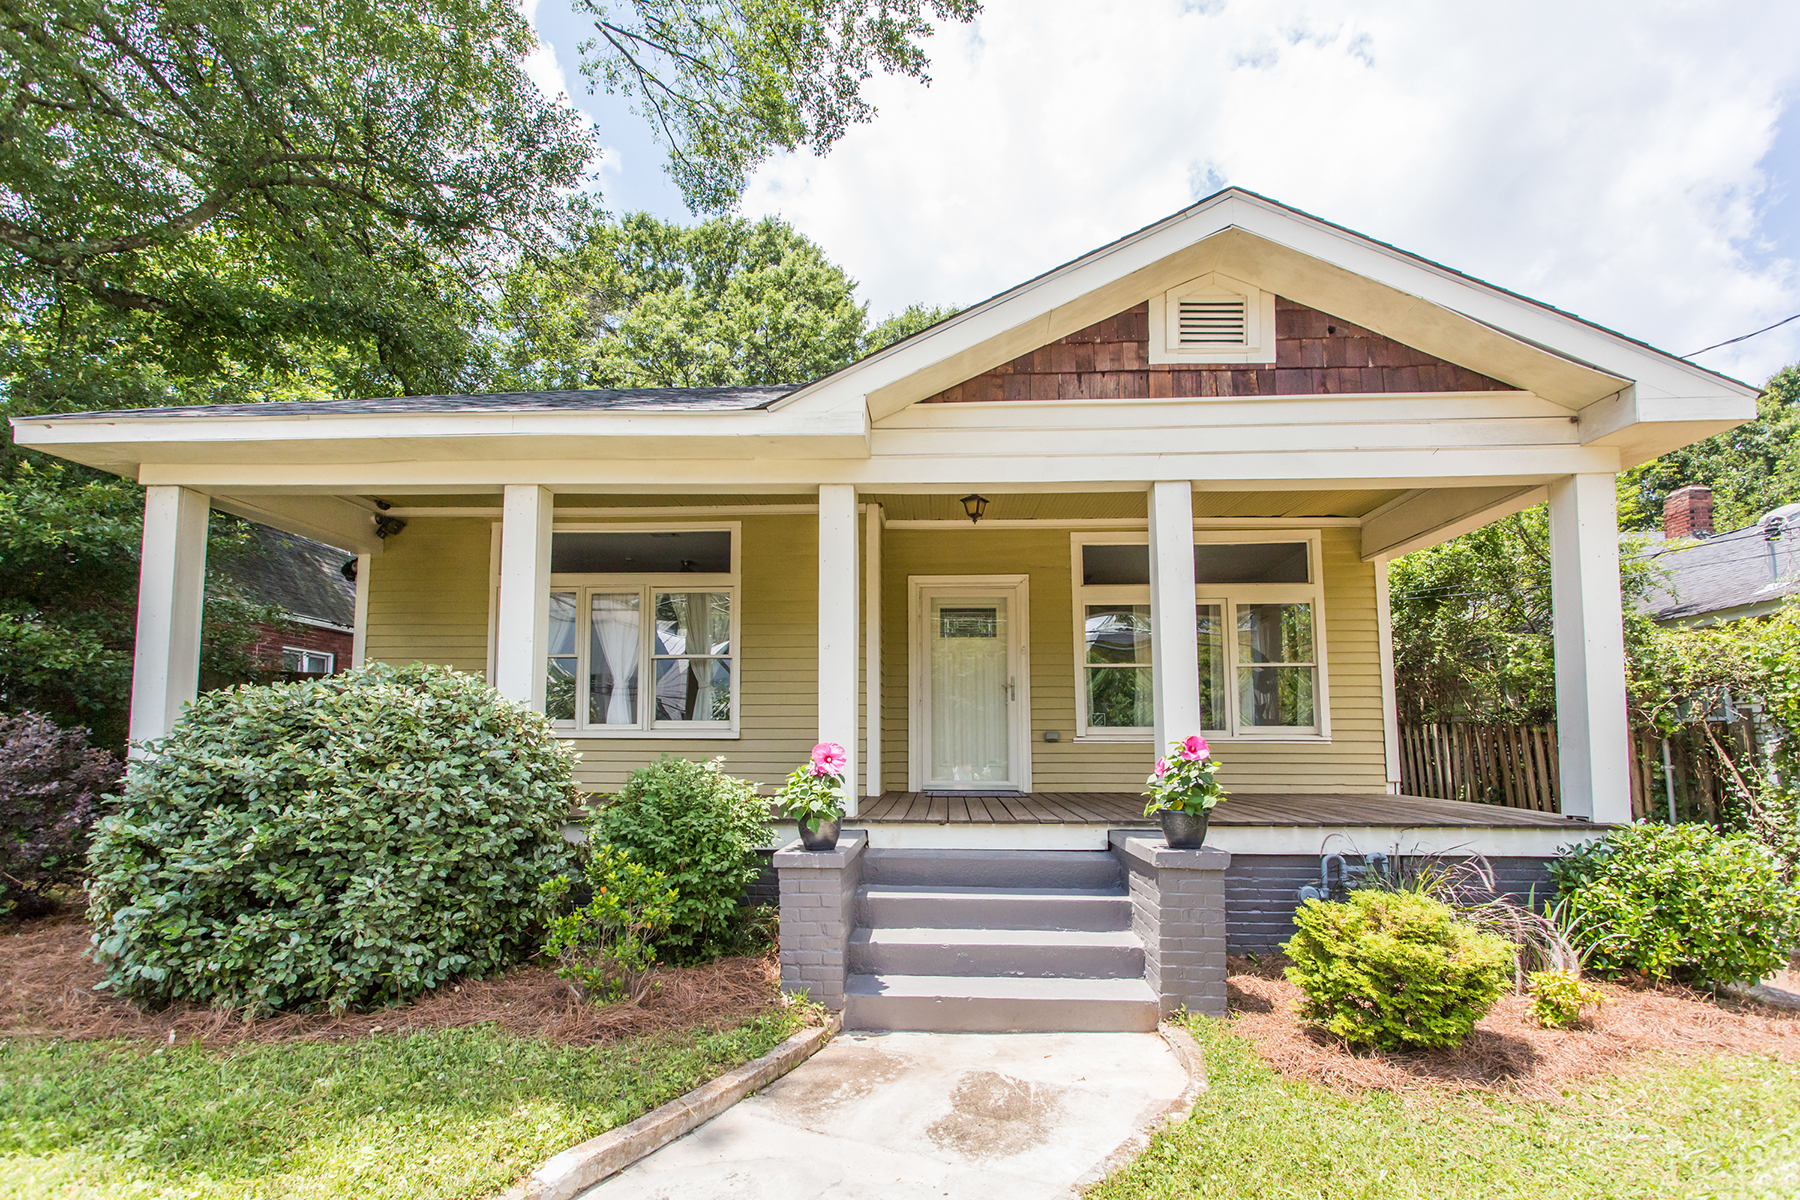 Single Family Home for Sale at Opportunity Rarely Knocks in Reynoldstown, But Here It Is! 105 Moreland Ave Atlanta, Georgia 30316 United States